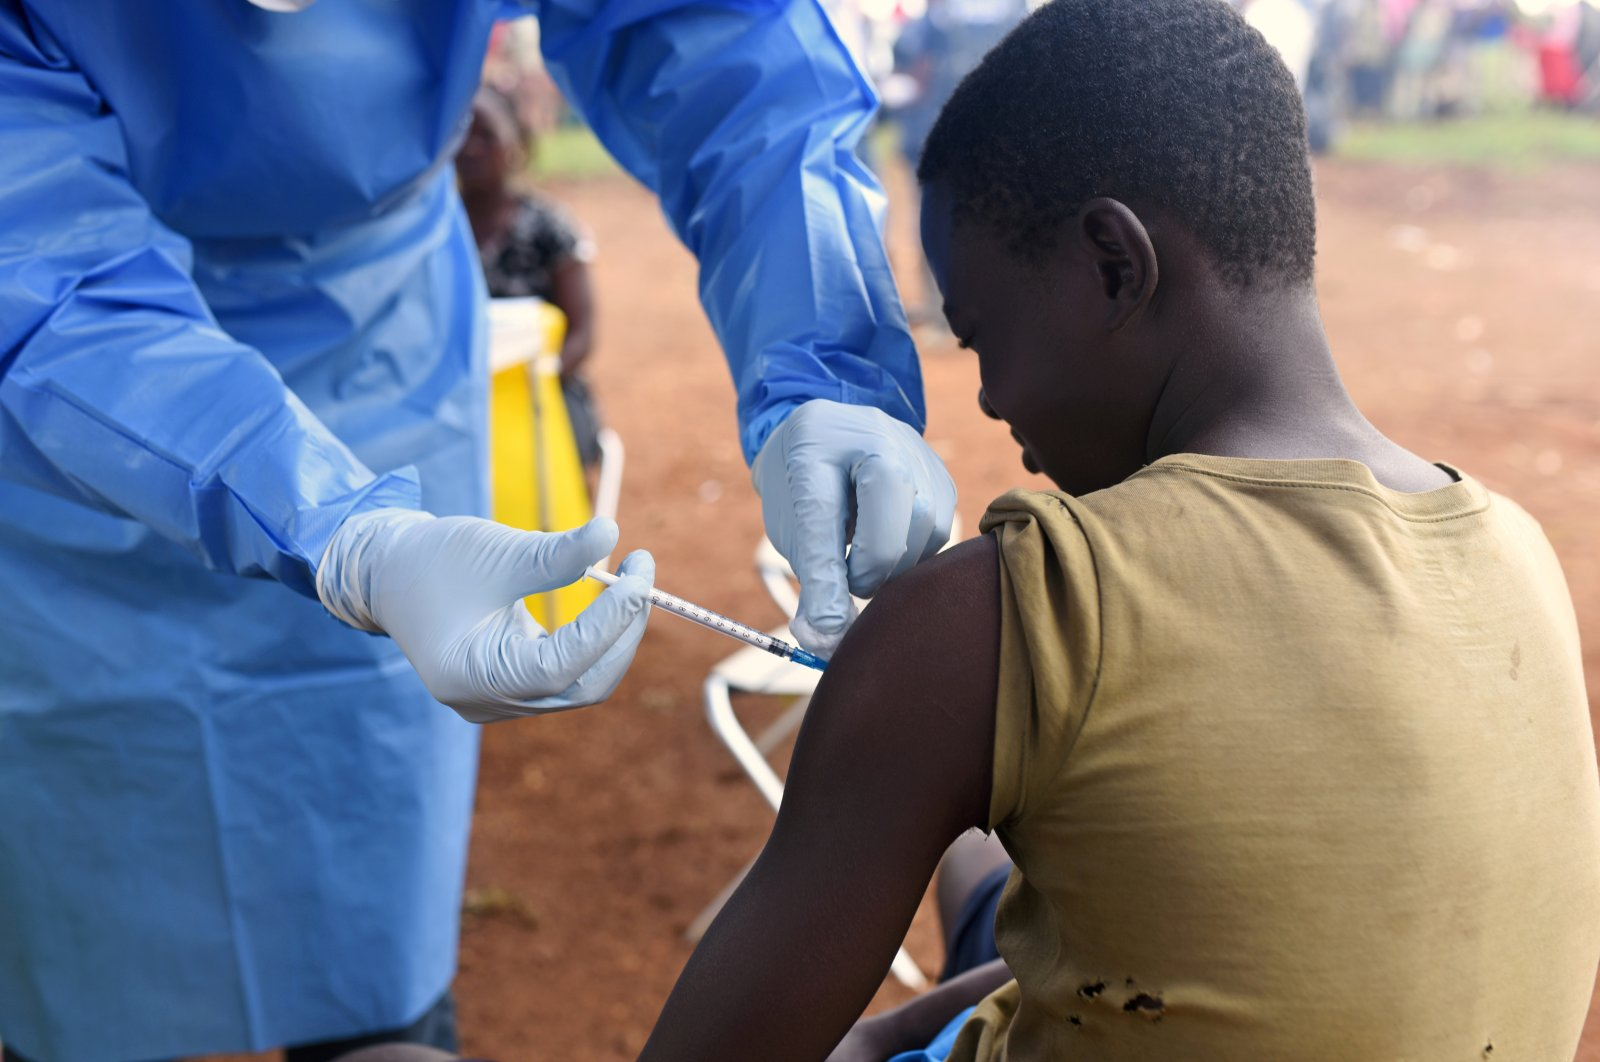 A Congolese health worker administers the Ebola vaccine to a boy who had contact with an Ebola patient in the village of Mangina in North Kivu province of the Democratic Republic of Congo, Africa, Aug. 18, 2018. (Reuters Photo)